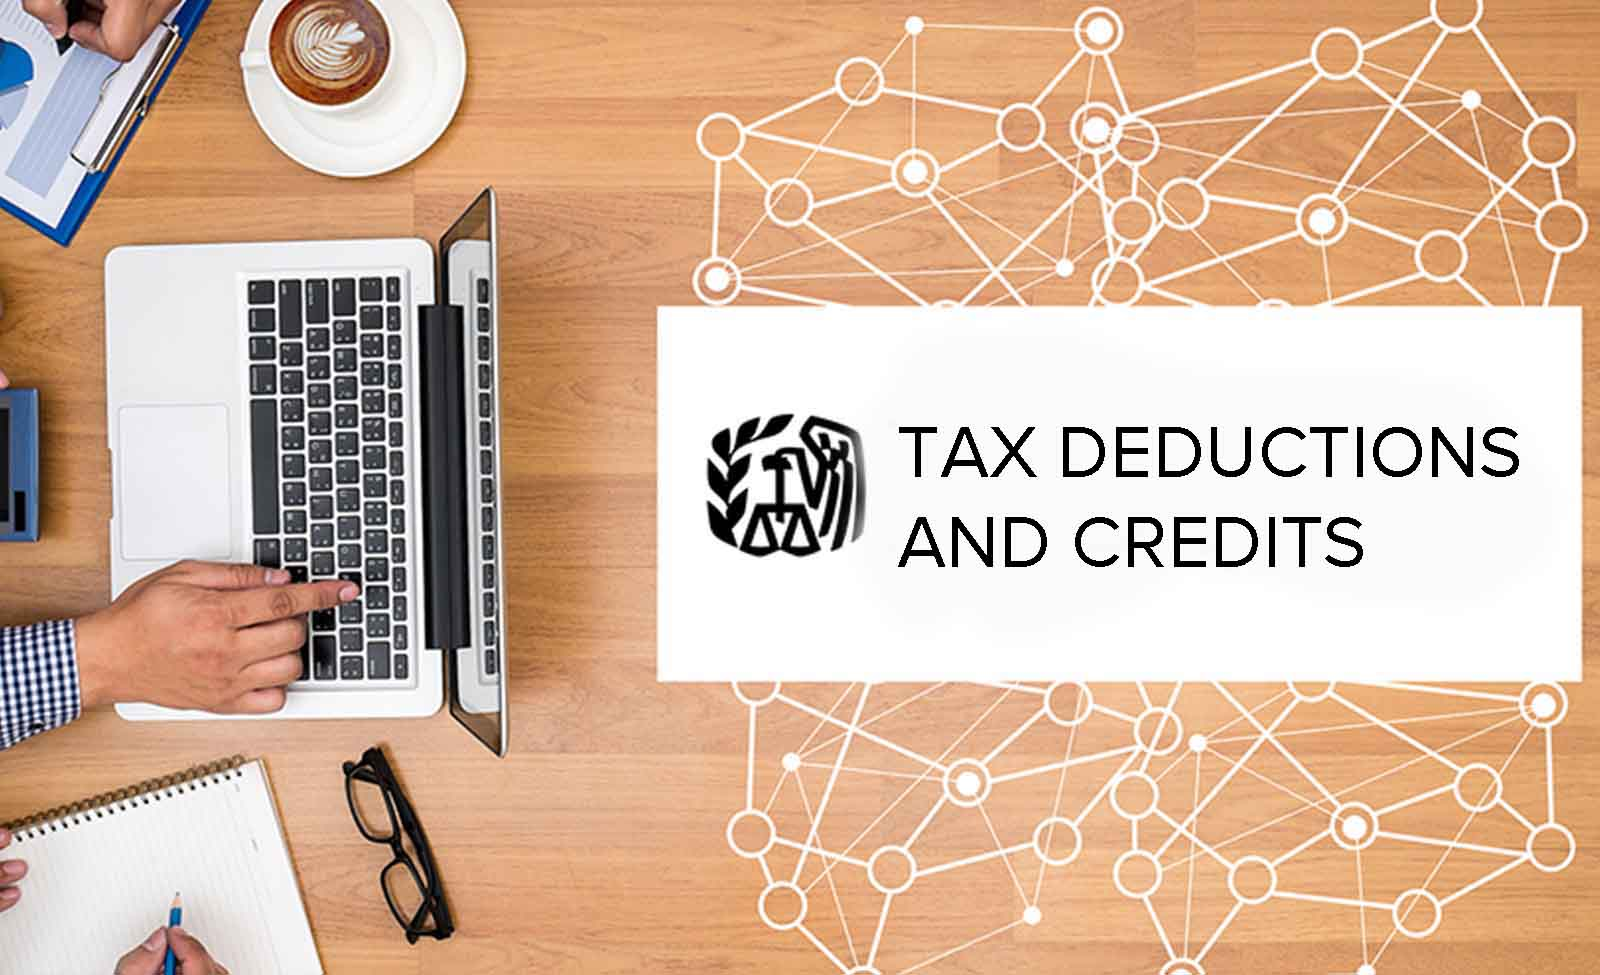 ULTIMATE LIST OF TAX DEDUCTIONS AND CREDITS